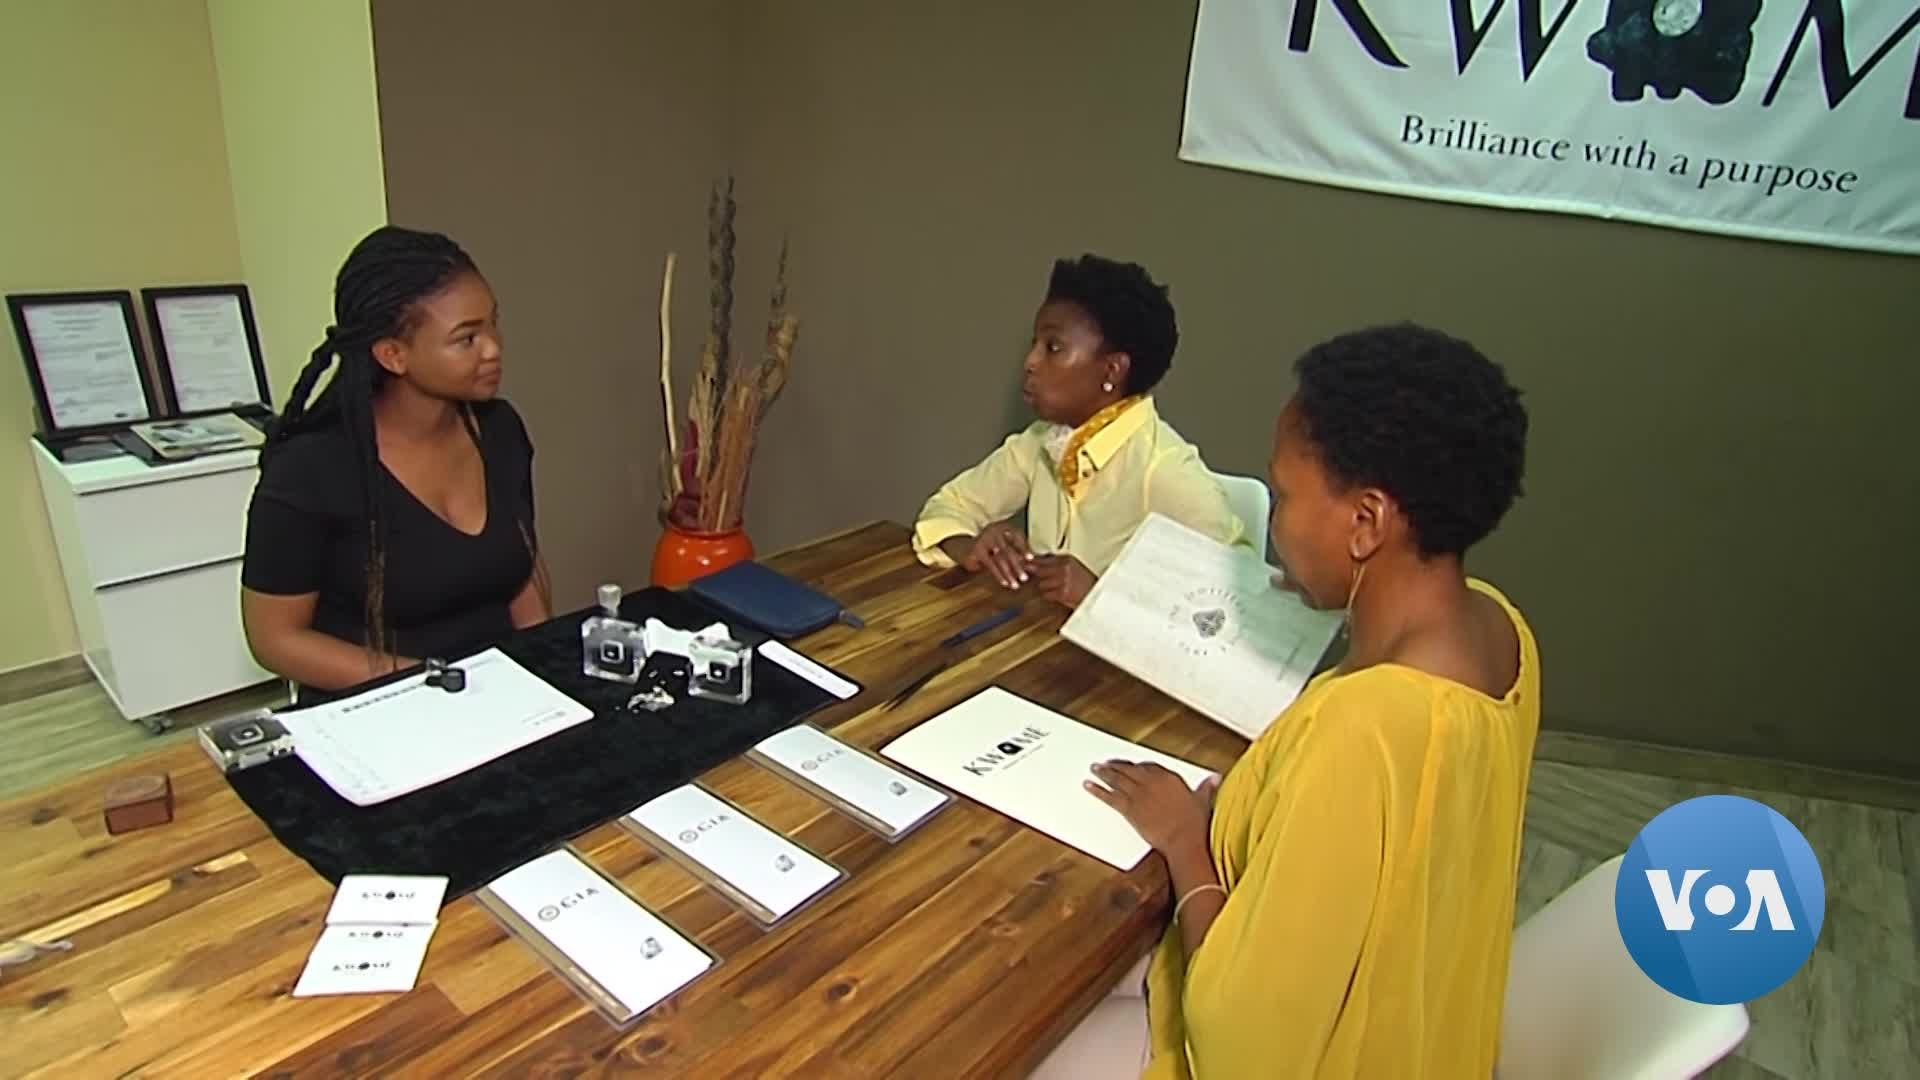 South African Sisters Shine in Diamond Business Dominated by Men